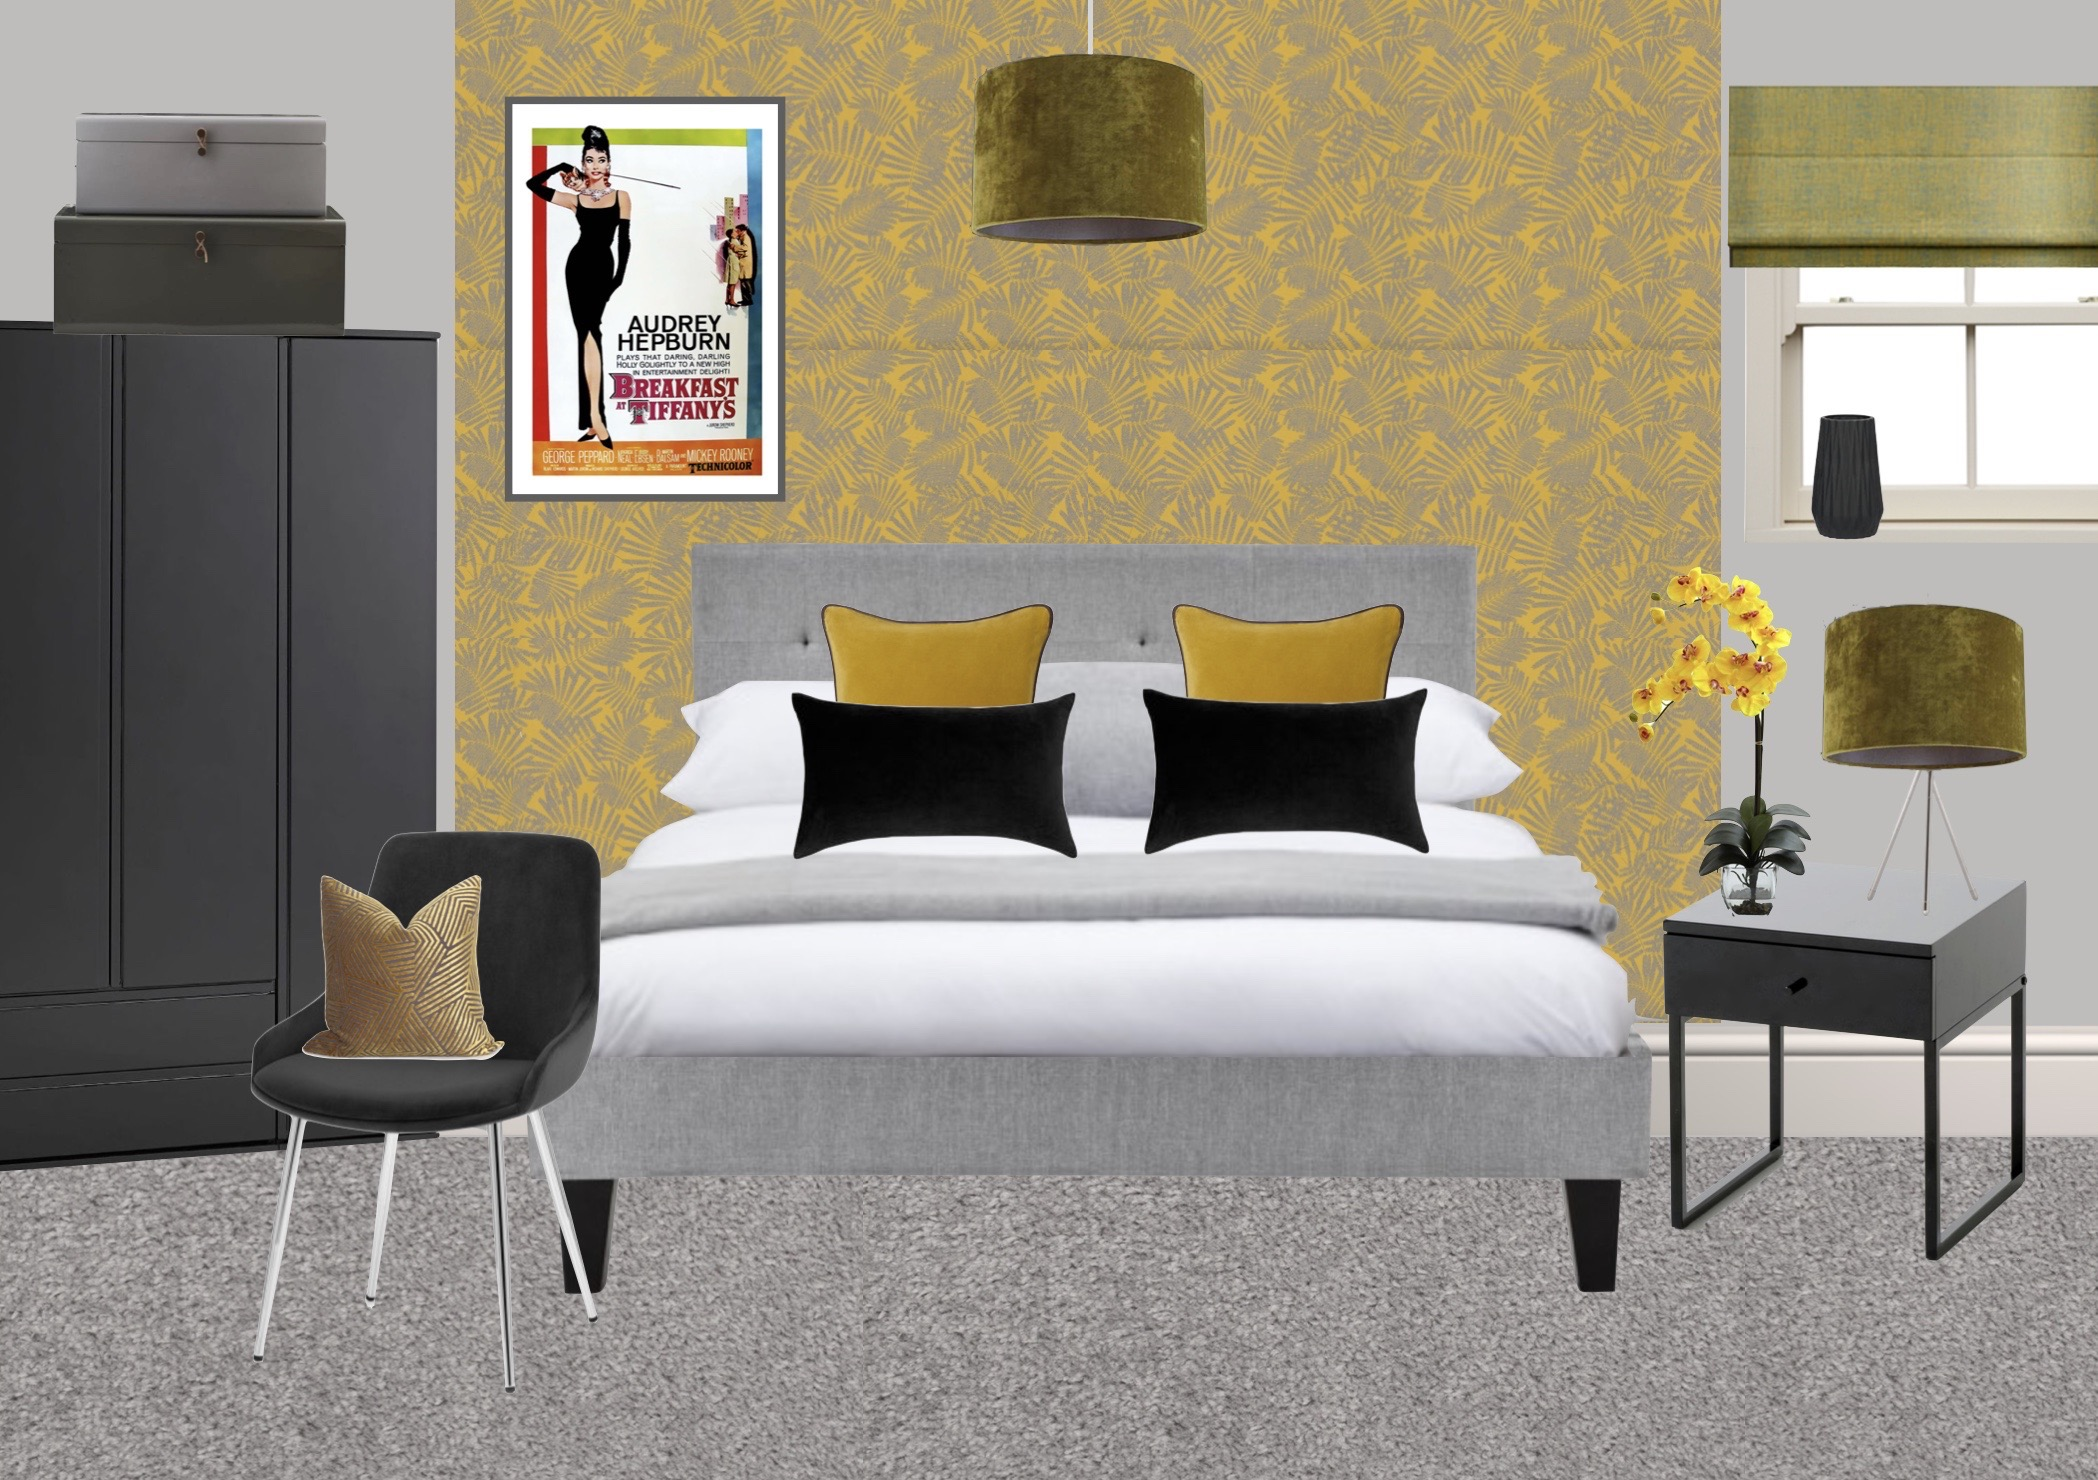 Moodboard for master bedroom in show home designed by Amelia Wilson Interiors Ltd